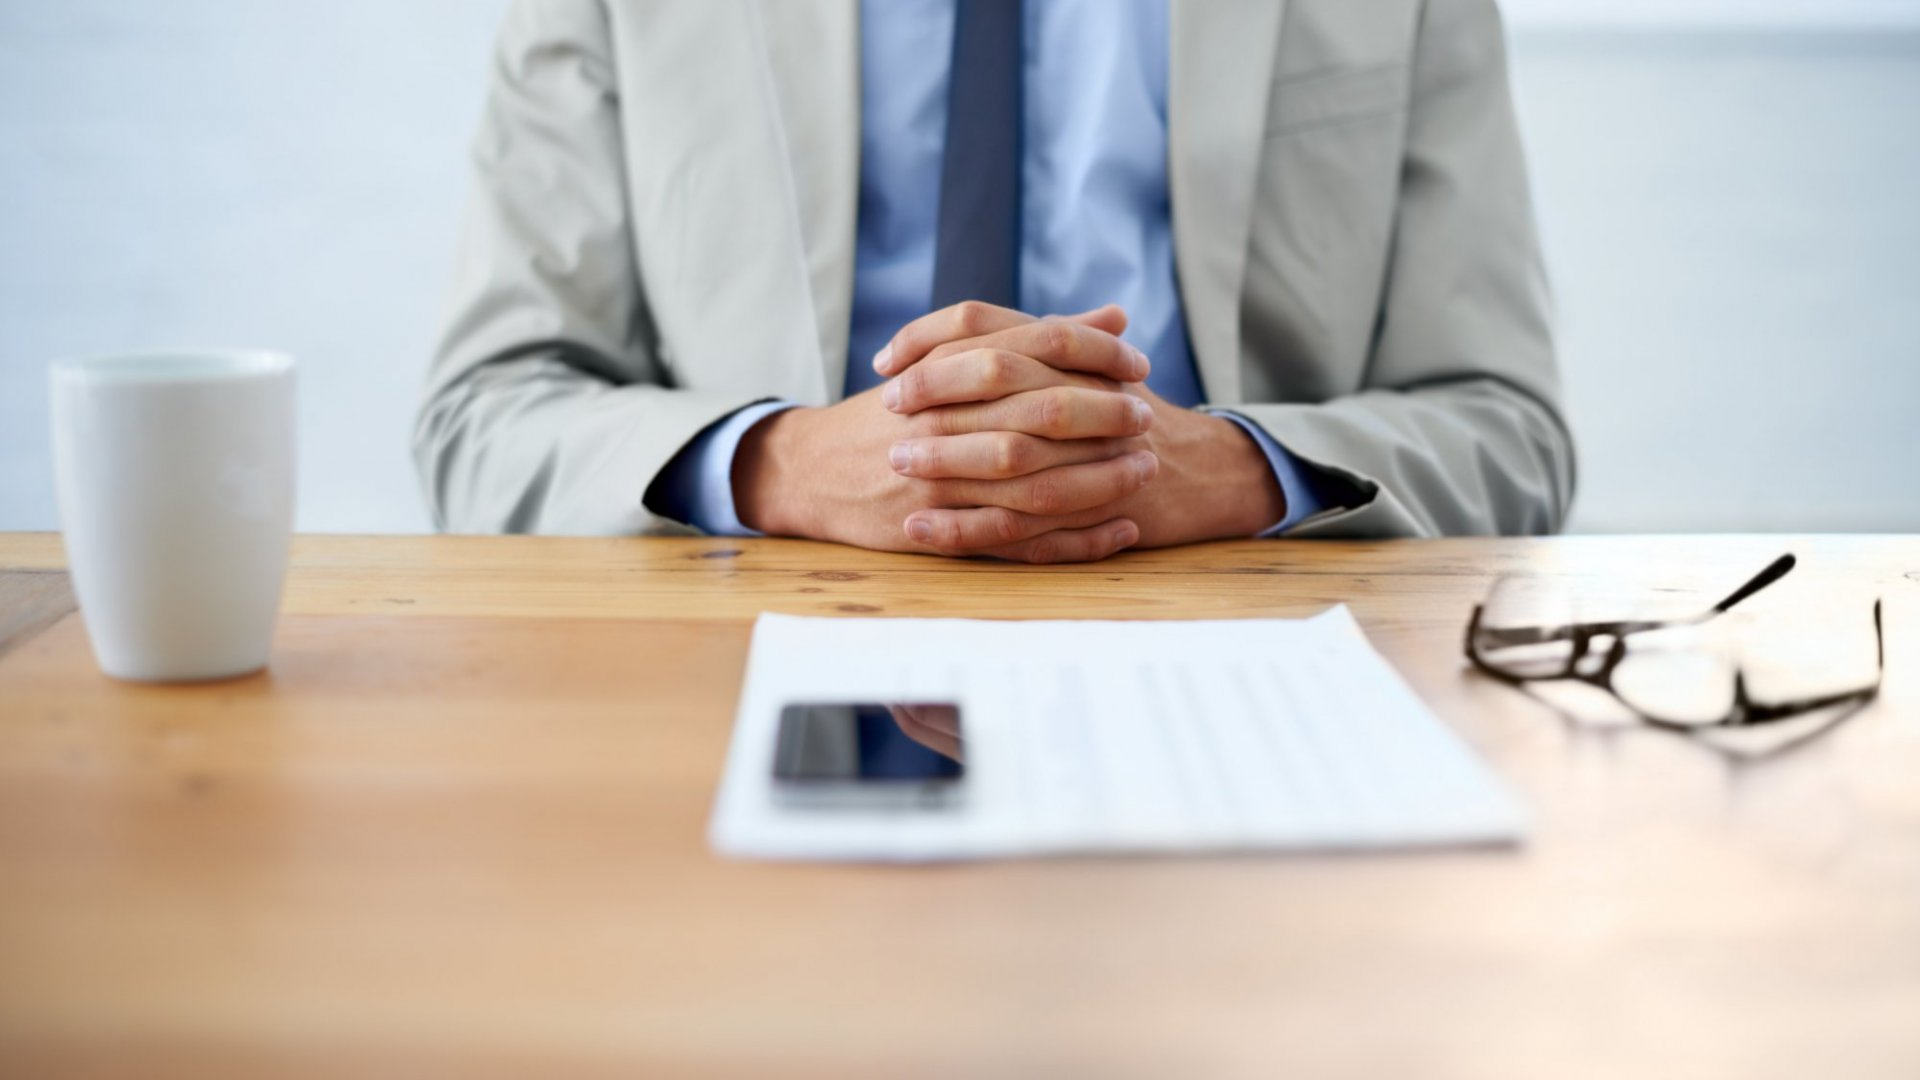 To Avoid Making Bad Hires, Look For These 5 Things in Every Person You Interview